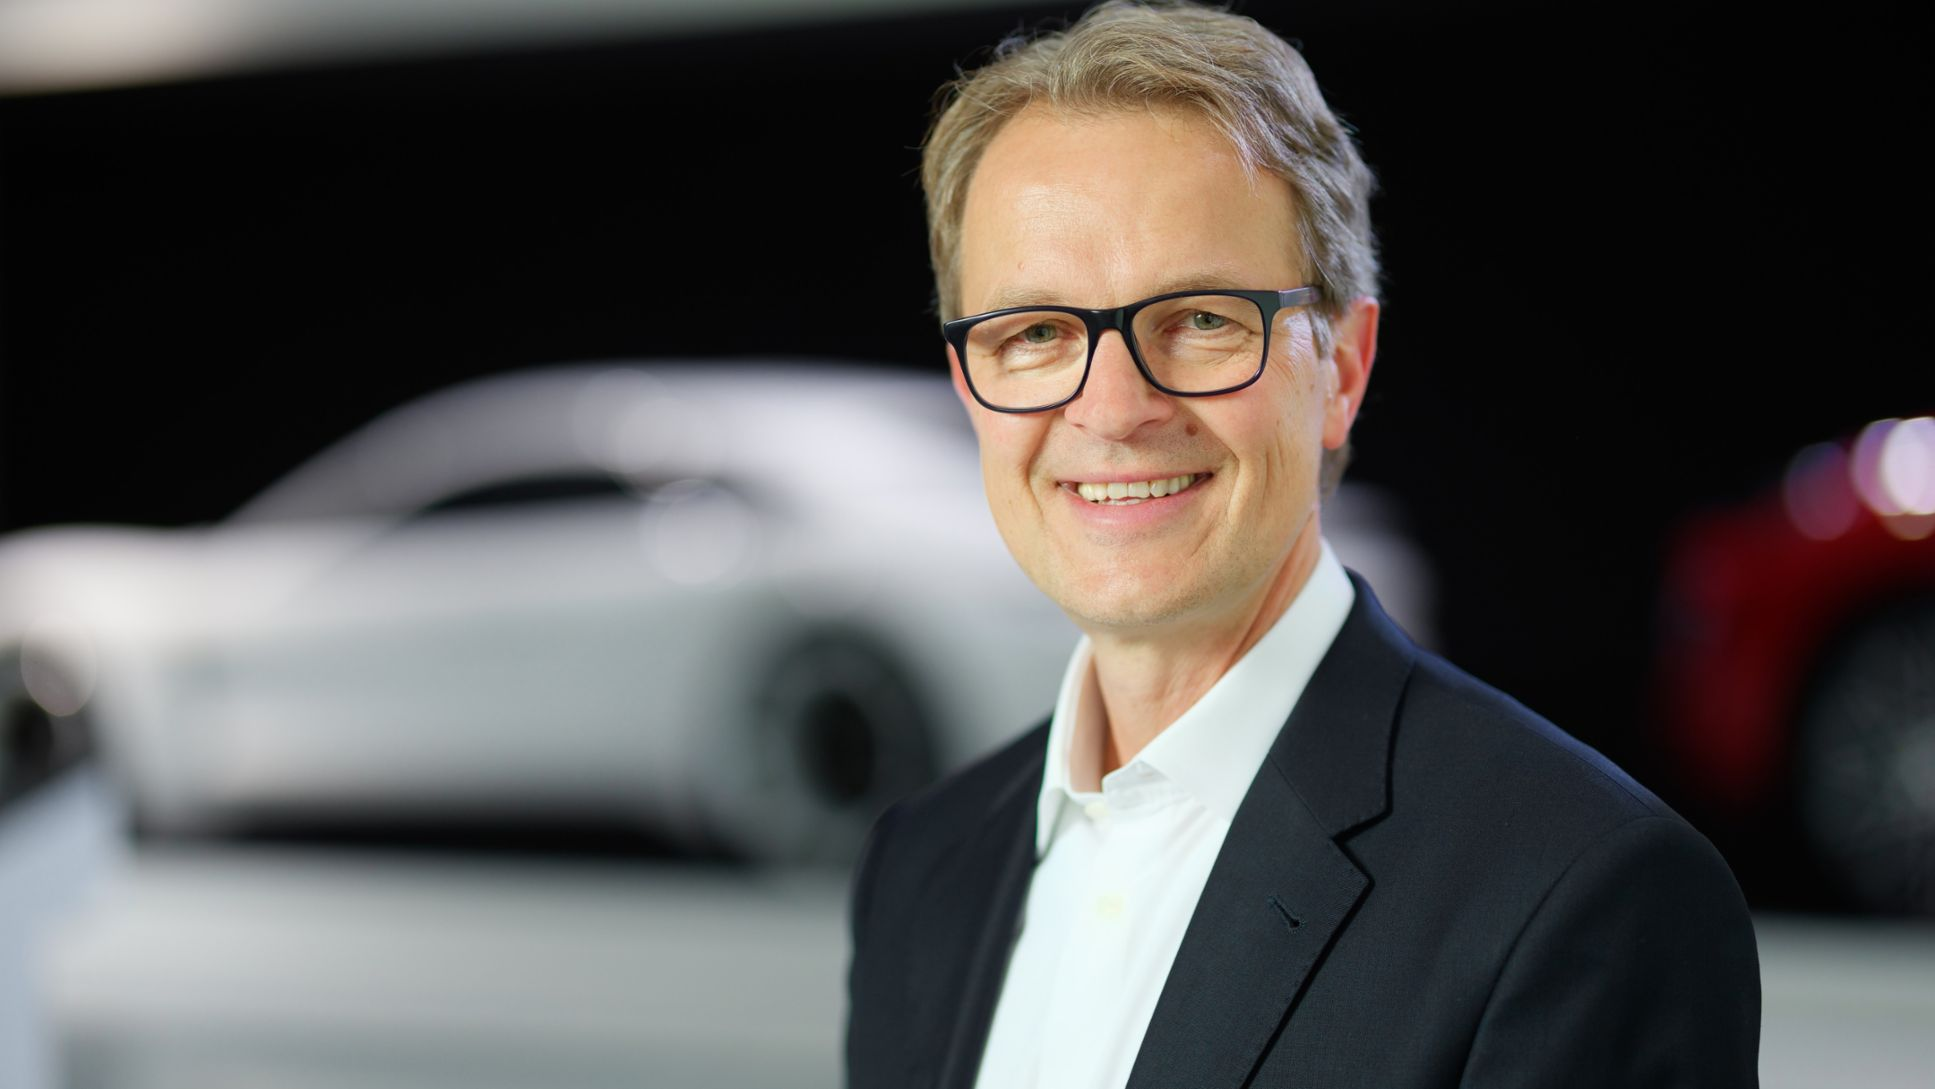 Dr. Kjell Gruner, President and Chief Executive Officer of Porsche Cars North America, 2020